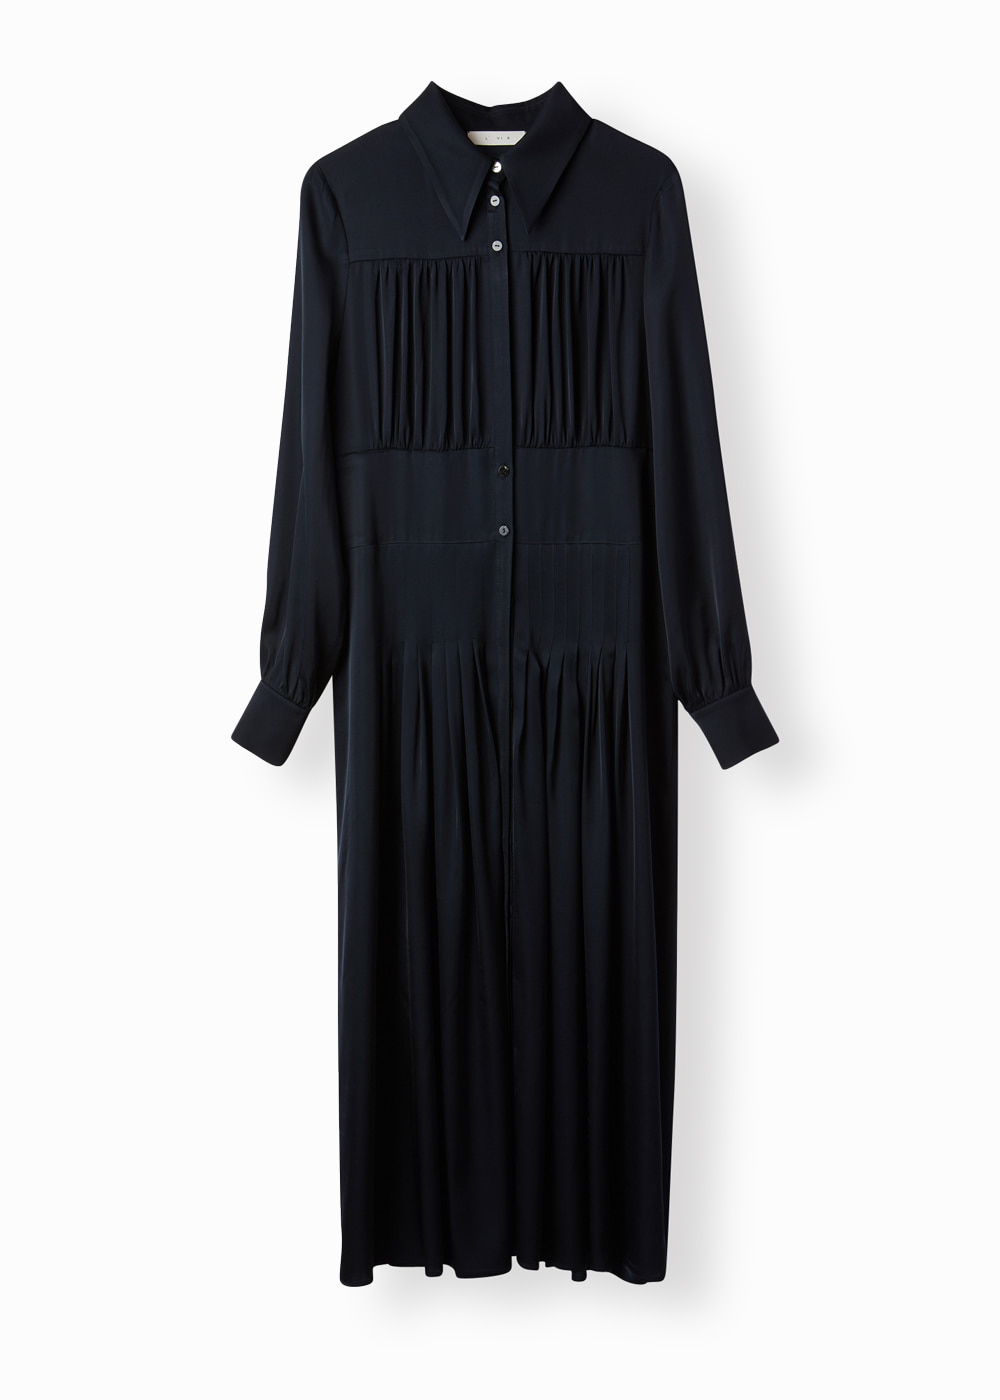 BUTTON SHIRRING DRESS BLACK